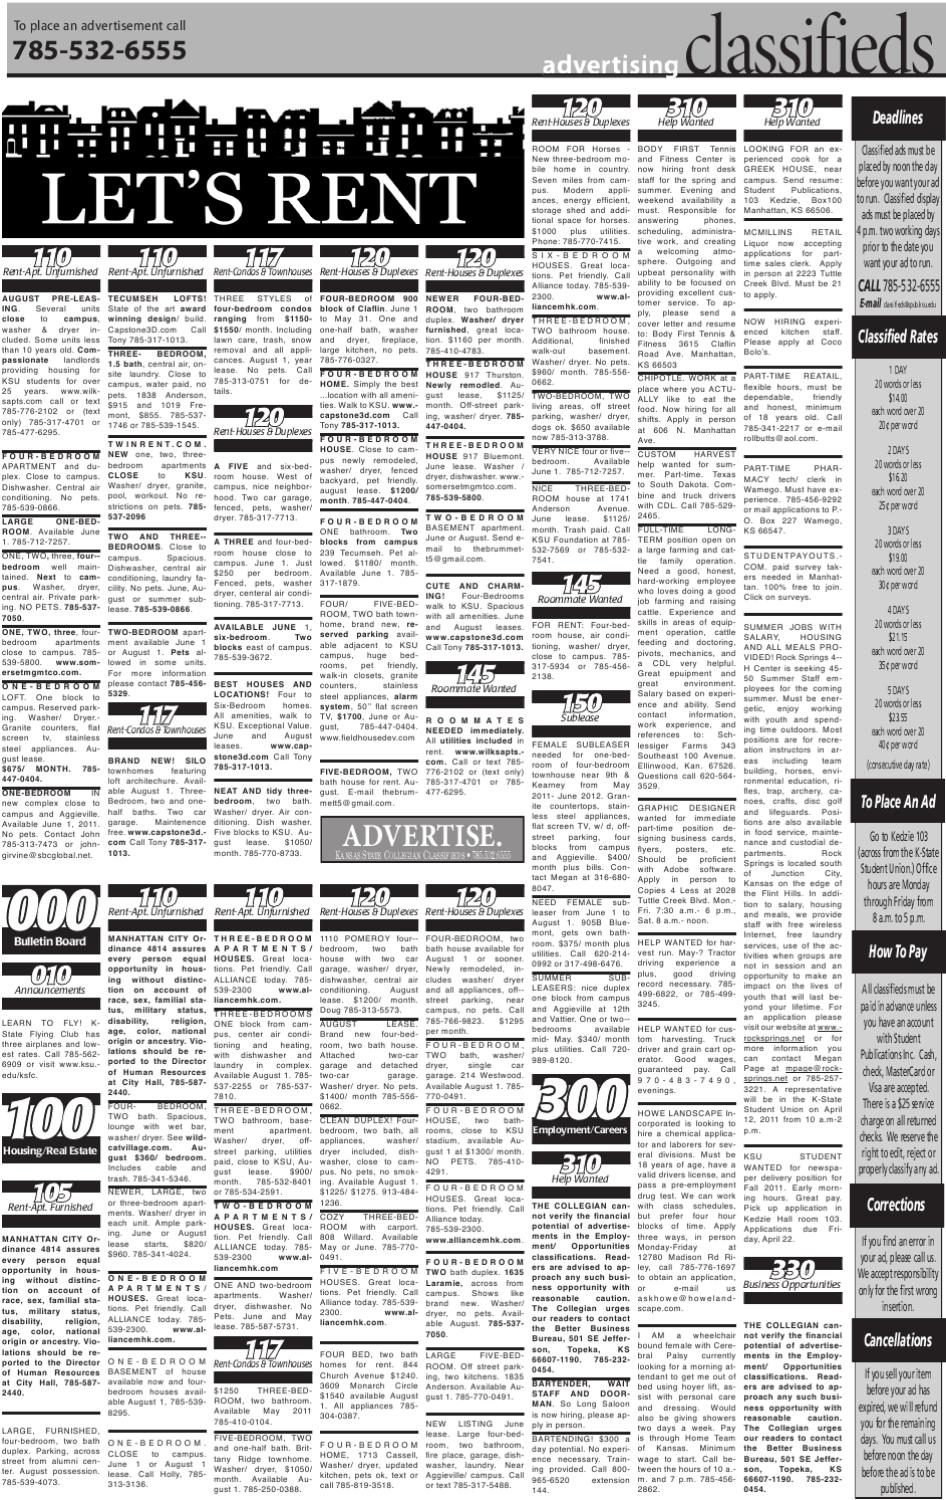 classifieds 4-11-11 by kansas state collegian